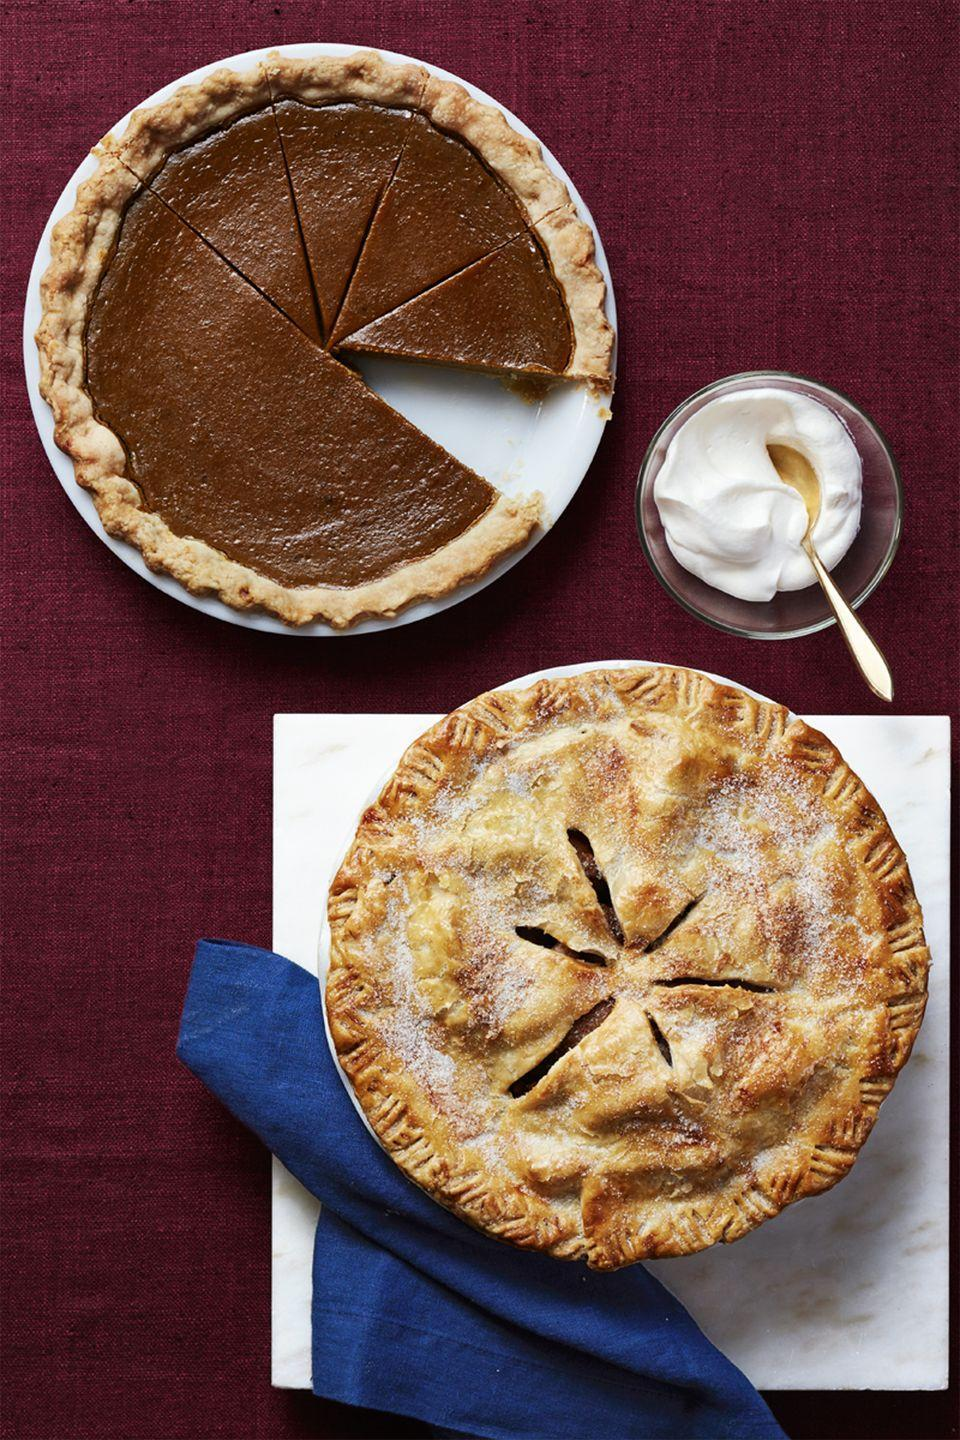 "<p>Consider it a fresh alternative to the classic apple pie. </p><p><a href=""https://www.womansday.com/food-recipes/food-drinks/recipes/a56477/pear-pie-recipe/"" rel=""nofollow noopener"" target=""_blank"" data-ylk=""slk:Get the Pear Pie recipe."" class=""link rapid-noclick-resp""><strong><em>Get the Pear Pie recipe. </em></strong> </a></p><p><strong><strong><strong>What You'll Need</strong></strong></strong><strong><strong>: </strong></strong><a href=""https://www.amazon.com/Pyrex-2-Pack-Glass-Plate-9-5-Inch/dp/B00LGLHZNM"" rel=""nofollow noopener"" target=""_blank"" data-ylk=""slk:Pyrex Glass Pie Plate"" class=""link rapid-noclick-resp"">Pyrex Glass Pie Plate</a> ($20, Amazon) </p>"